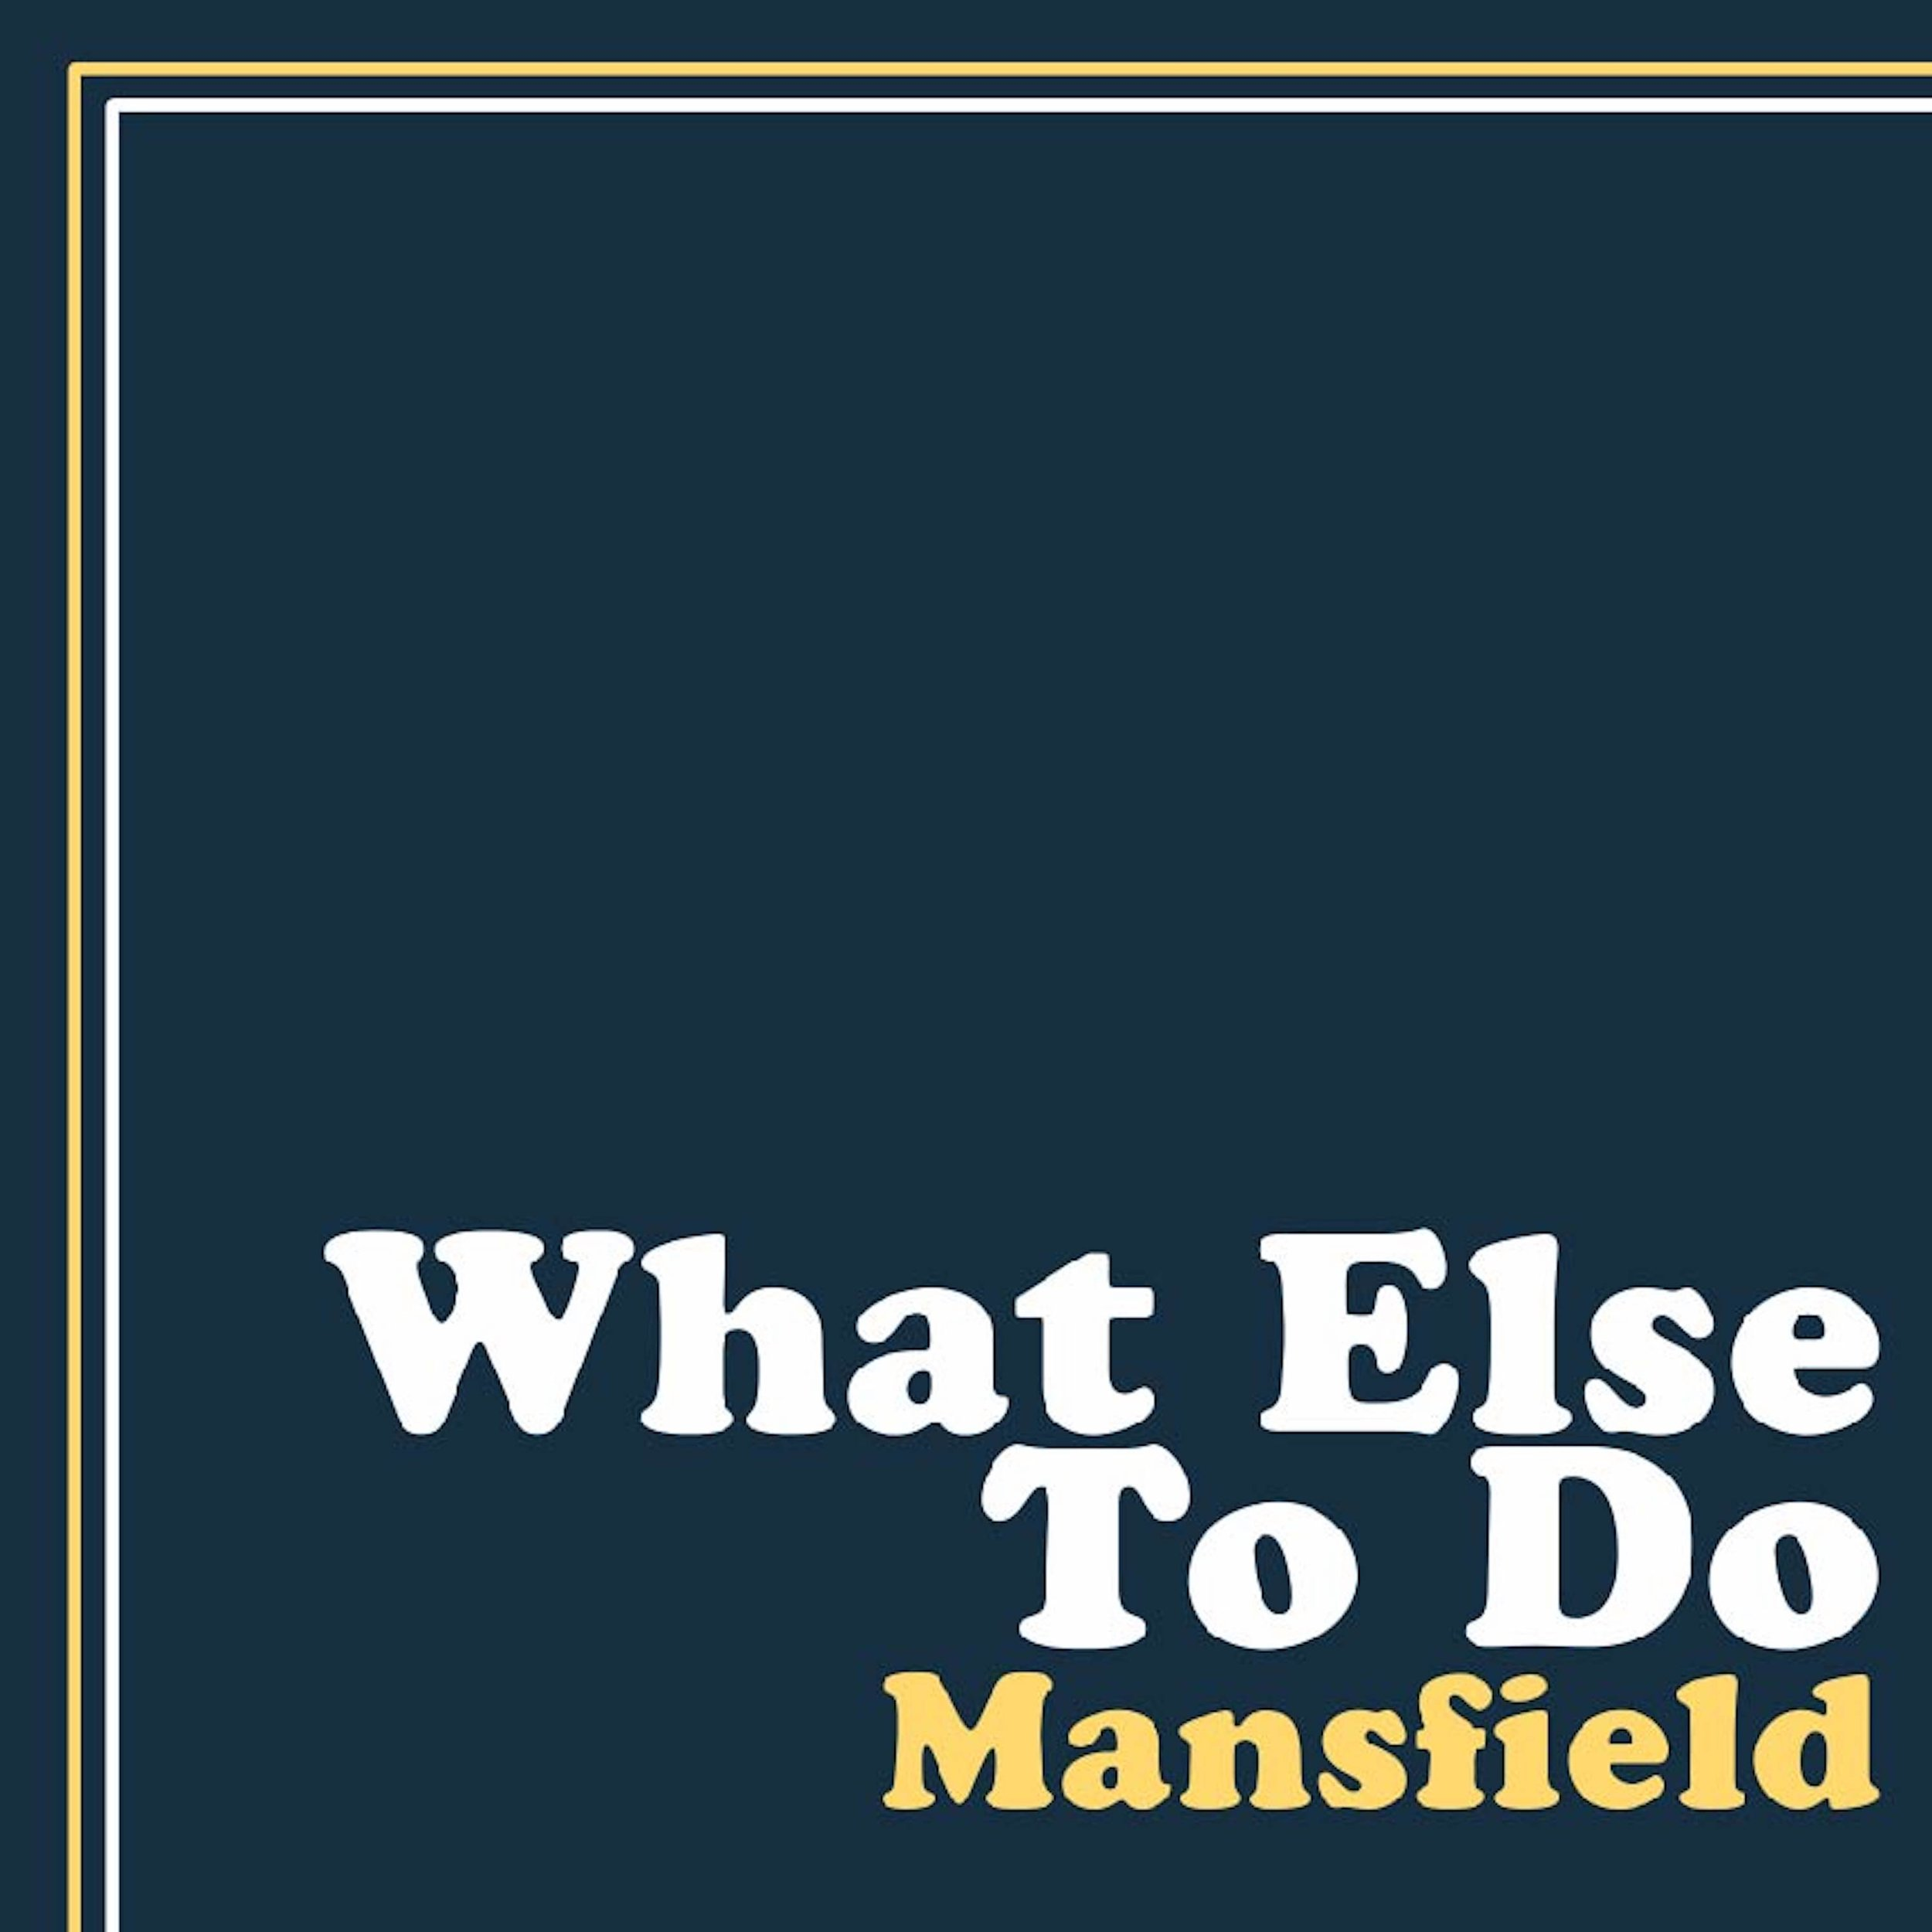 MANSFIELD - What Else To Do Cover.jpg